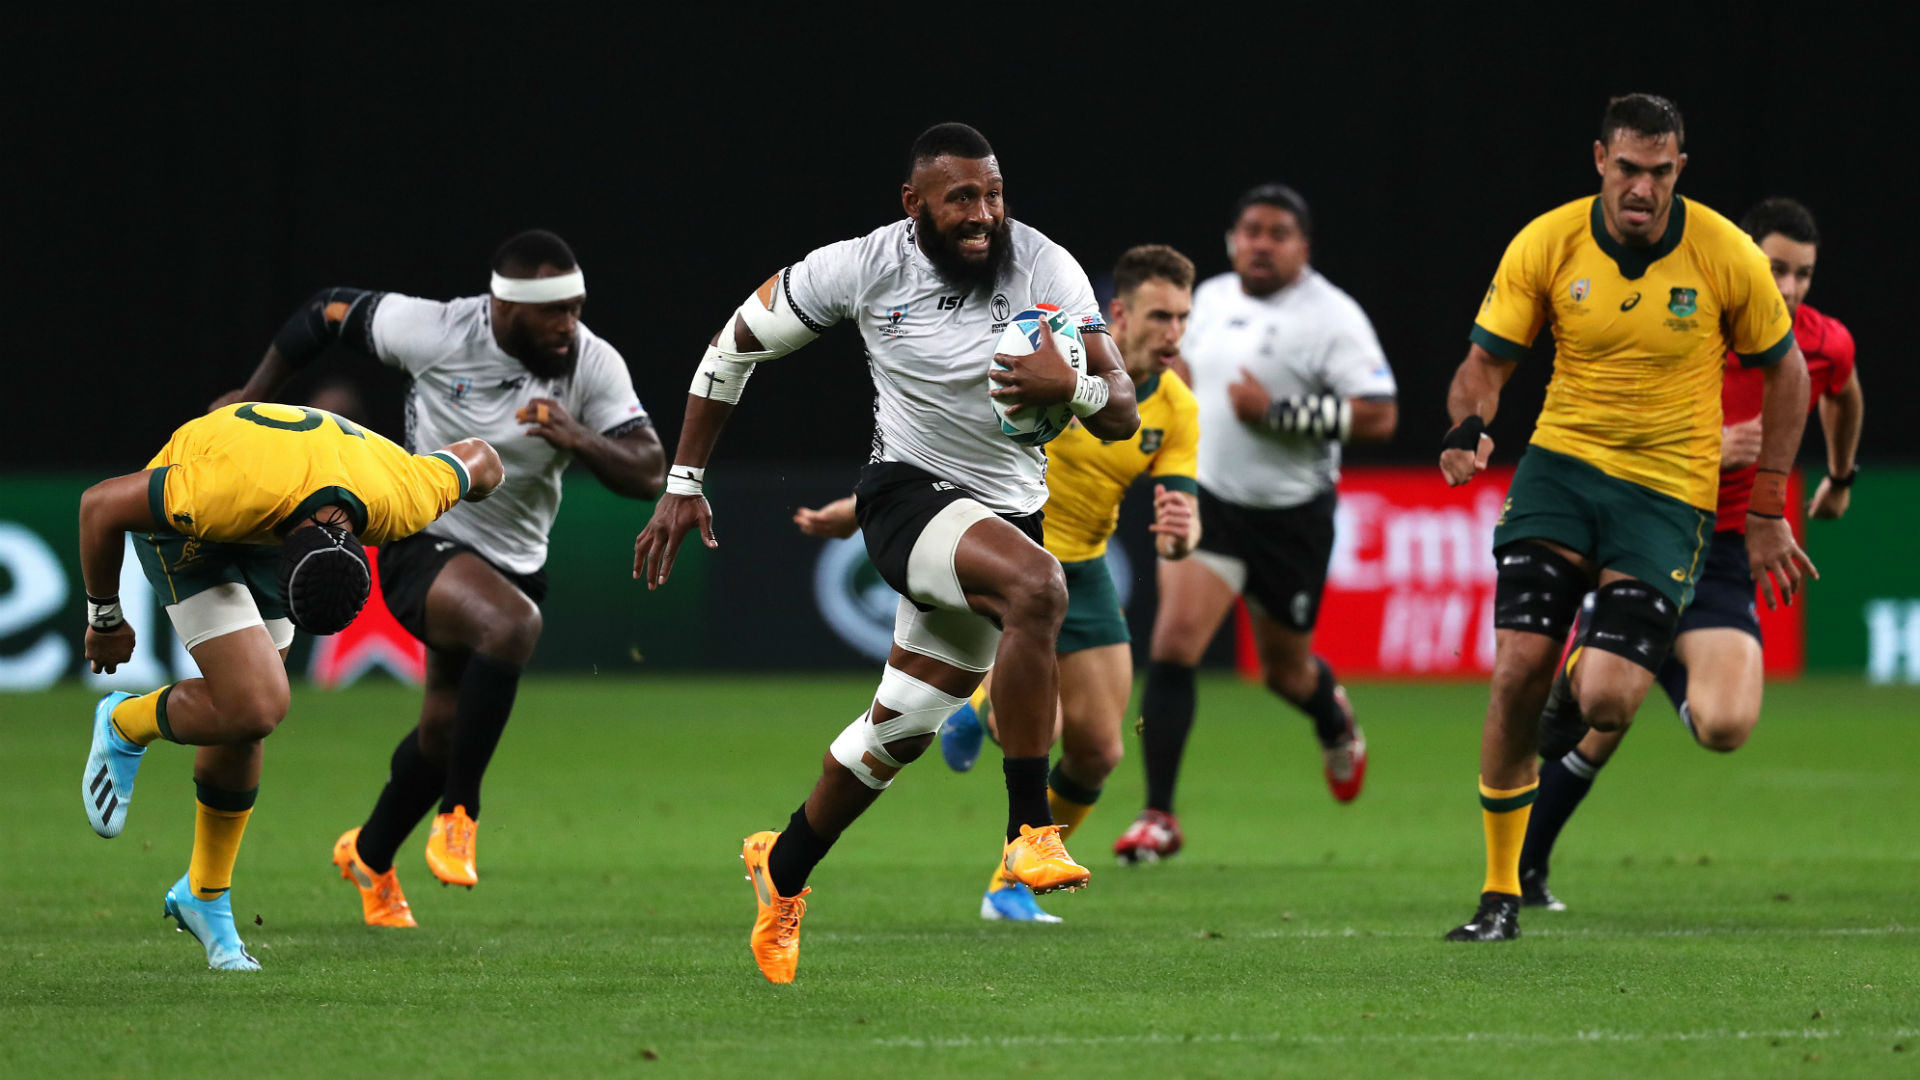 Fiji failed to see out a shock victory over Australia in their Rugby World Cup opener, and Michael Cheika was proud of his team's recovery.